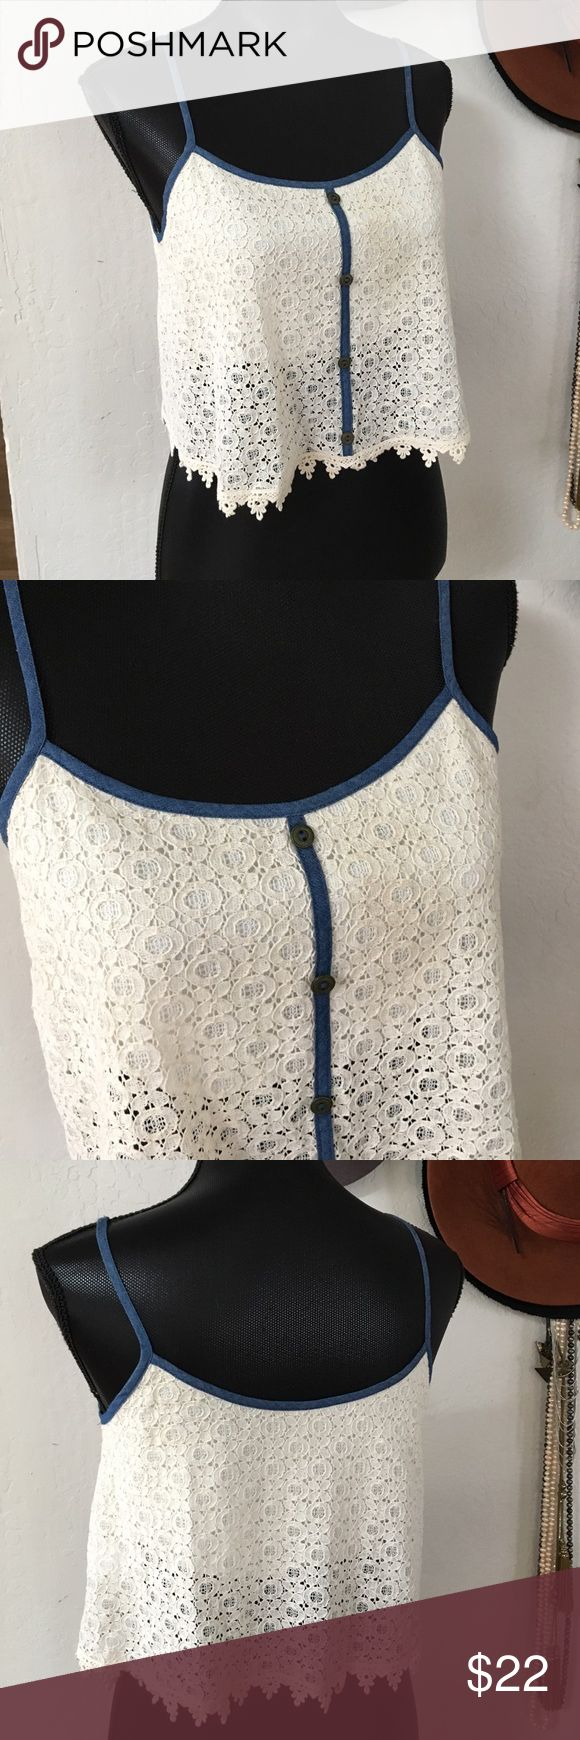 """Cute crop top Cream crop top by Paper Crane with blue denim trim and brass buttons. . Thick cotton lace with built in bra. 17"""" across underarms. 17"""" from shoulder to hem. Like new condition.  Never worn nor washed. Paper Crane Tops Crop Tops"""